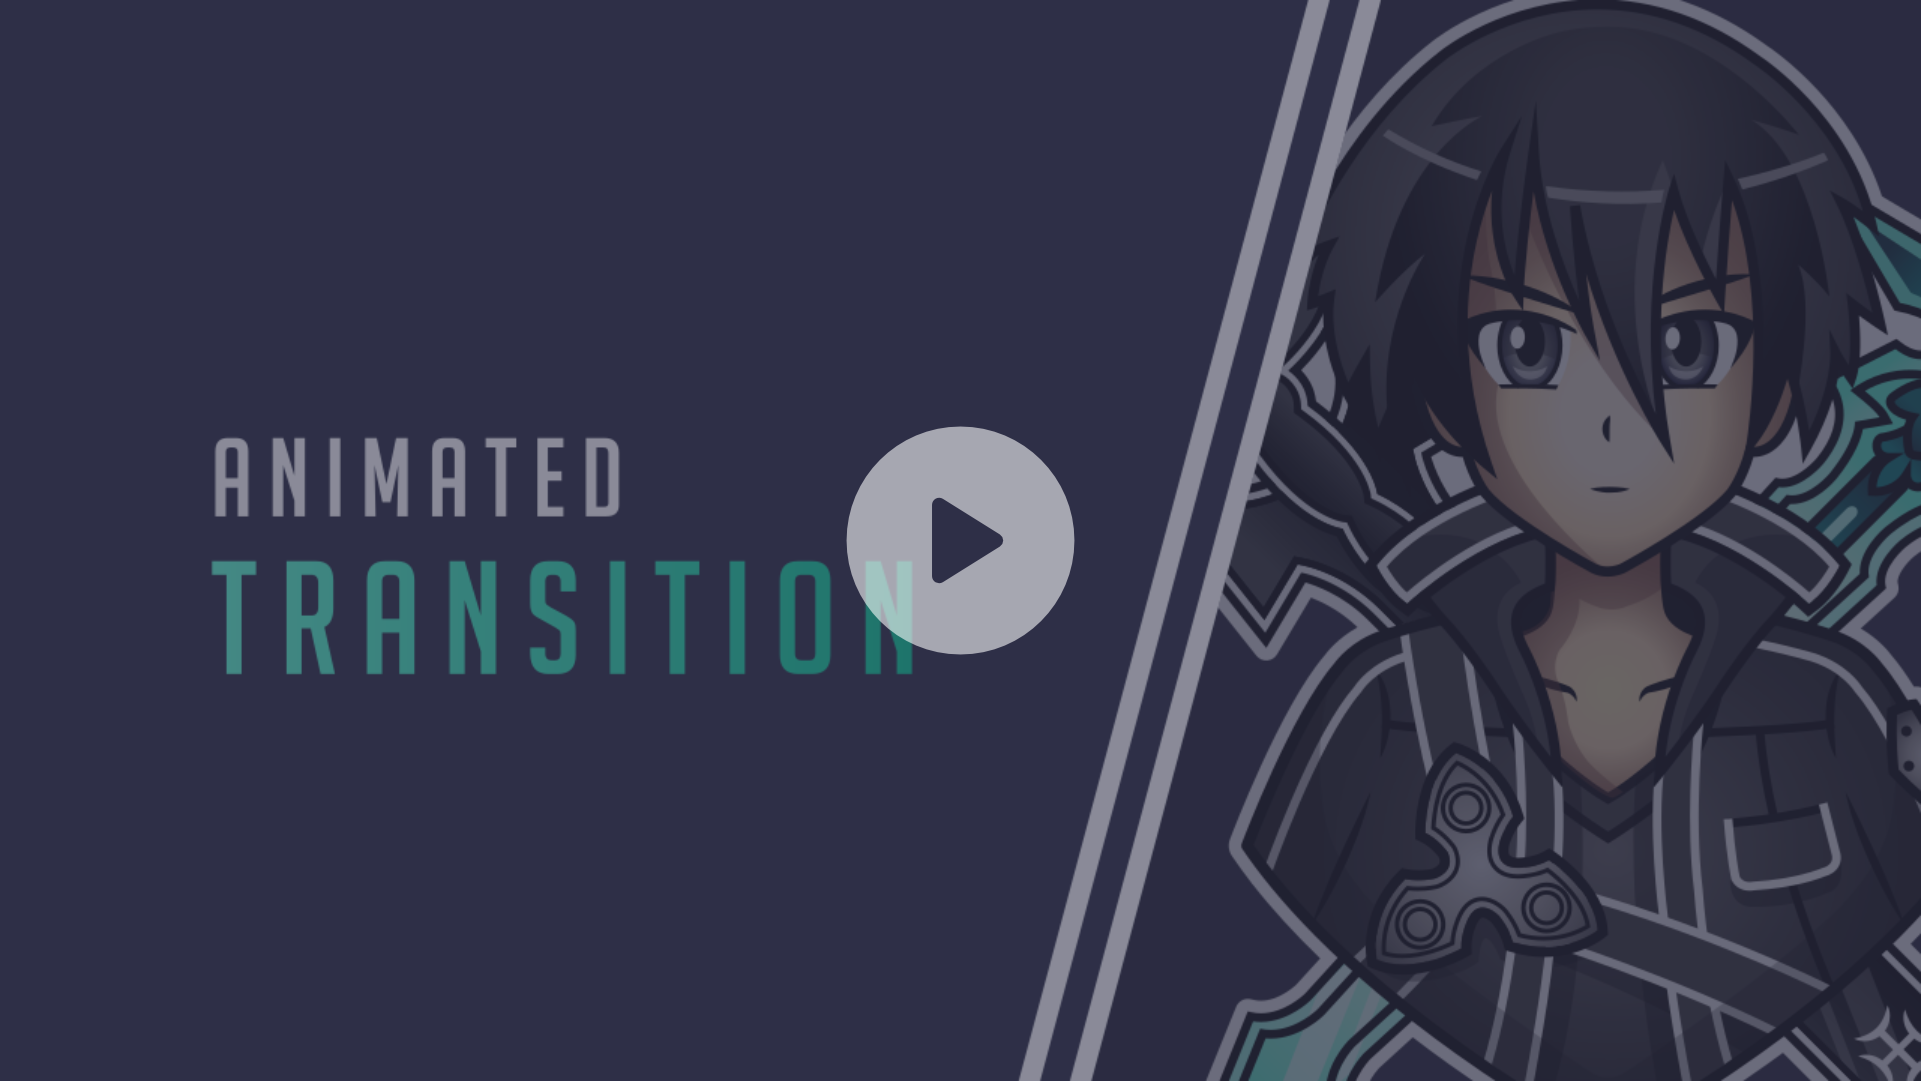 Animated transition for a streamer using the kirito logo we made for him